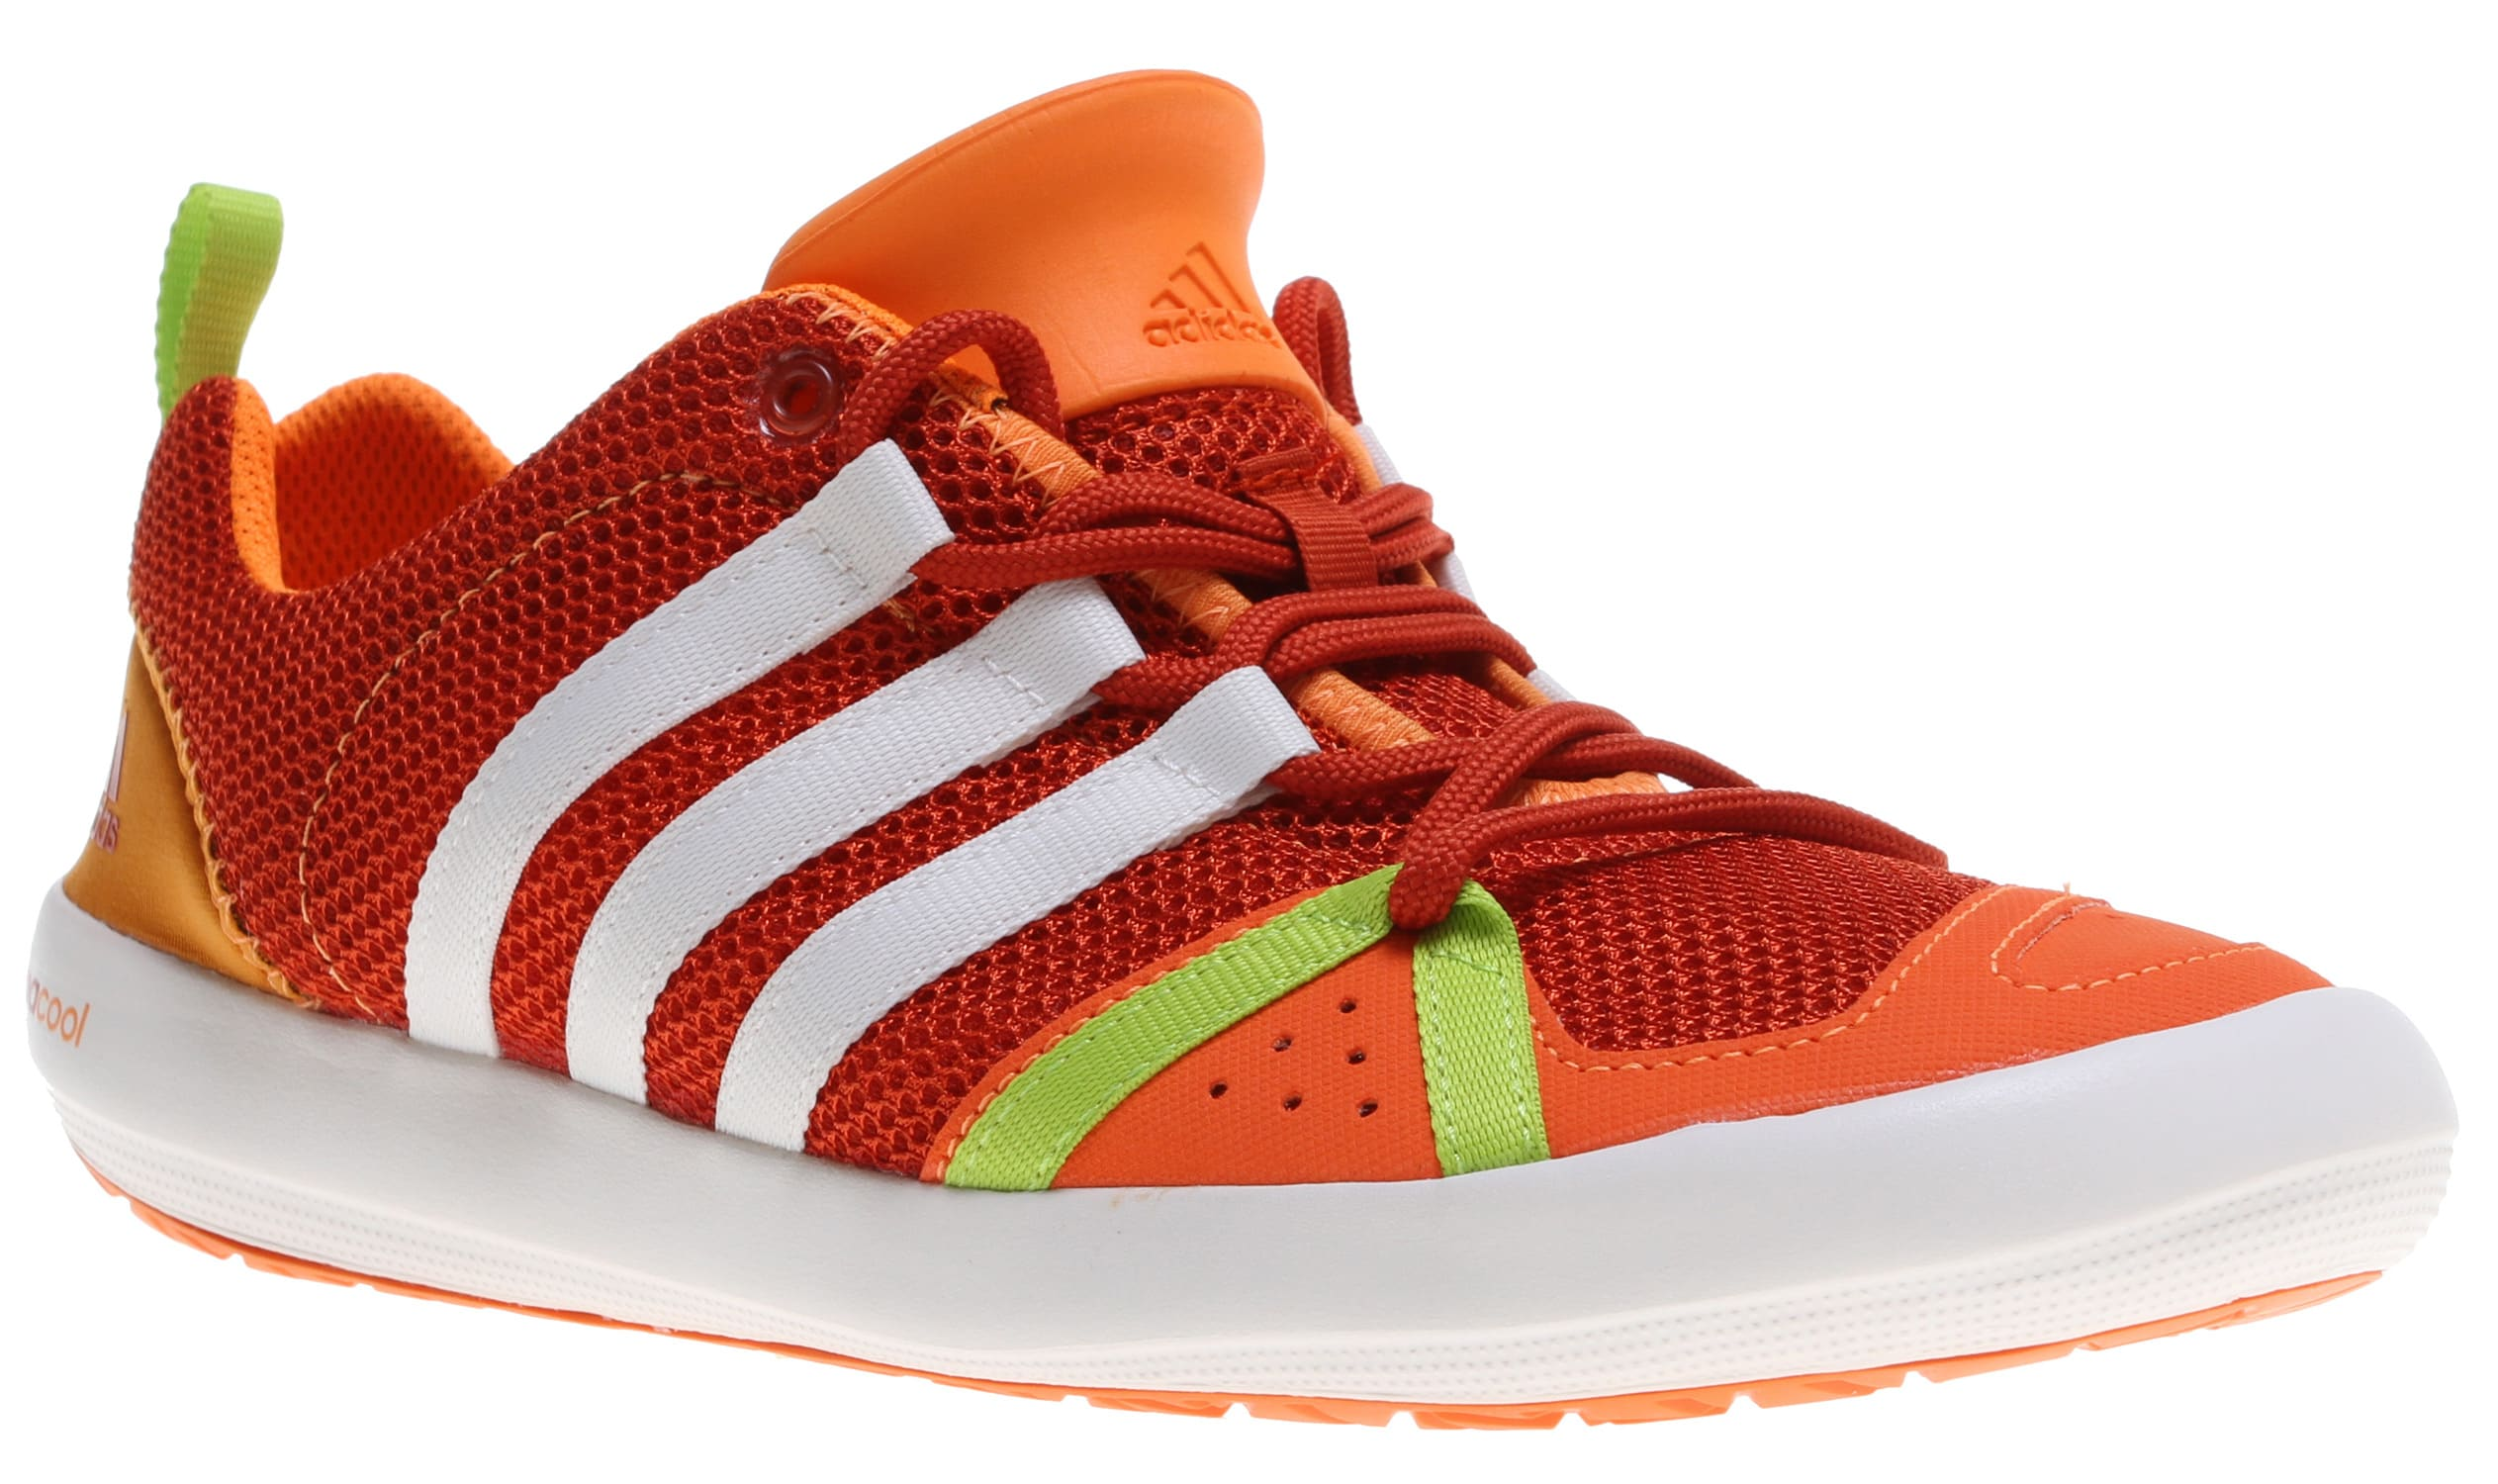 1a538edd0ed973 Adidas Climacool Boat Lace Water Shoes - thumbnail 2